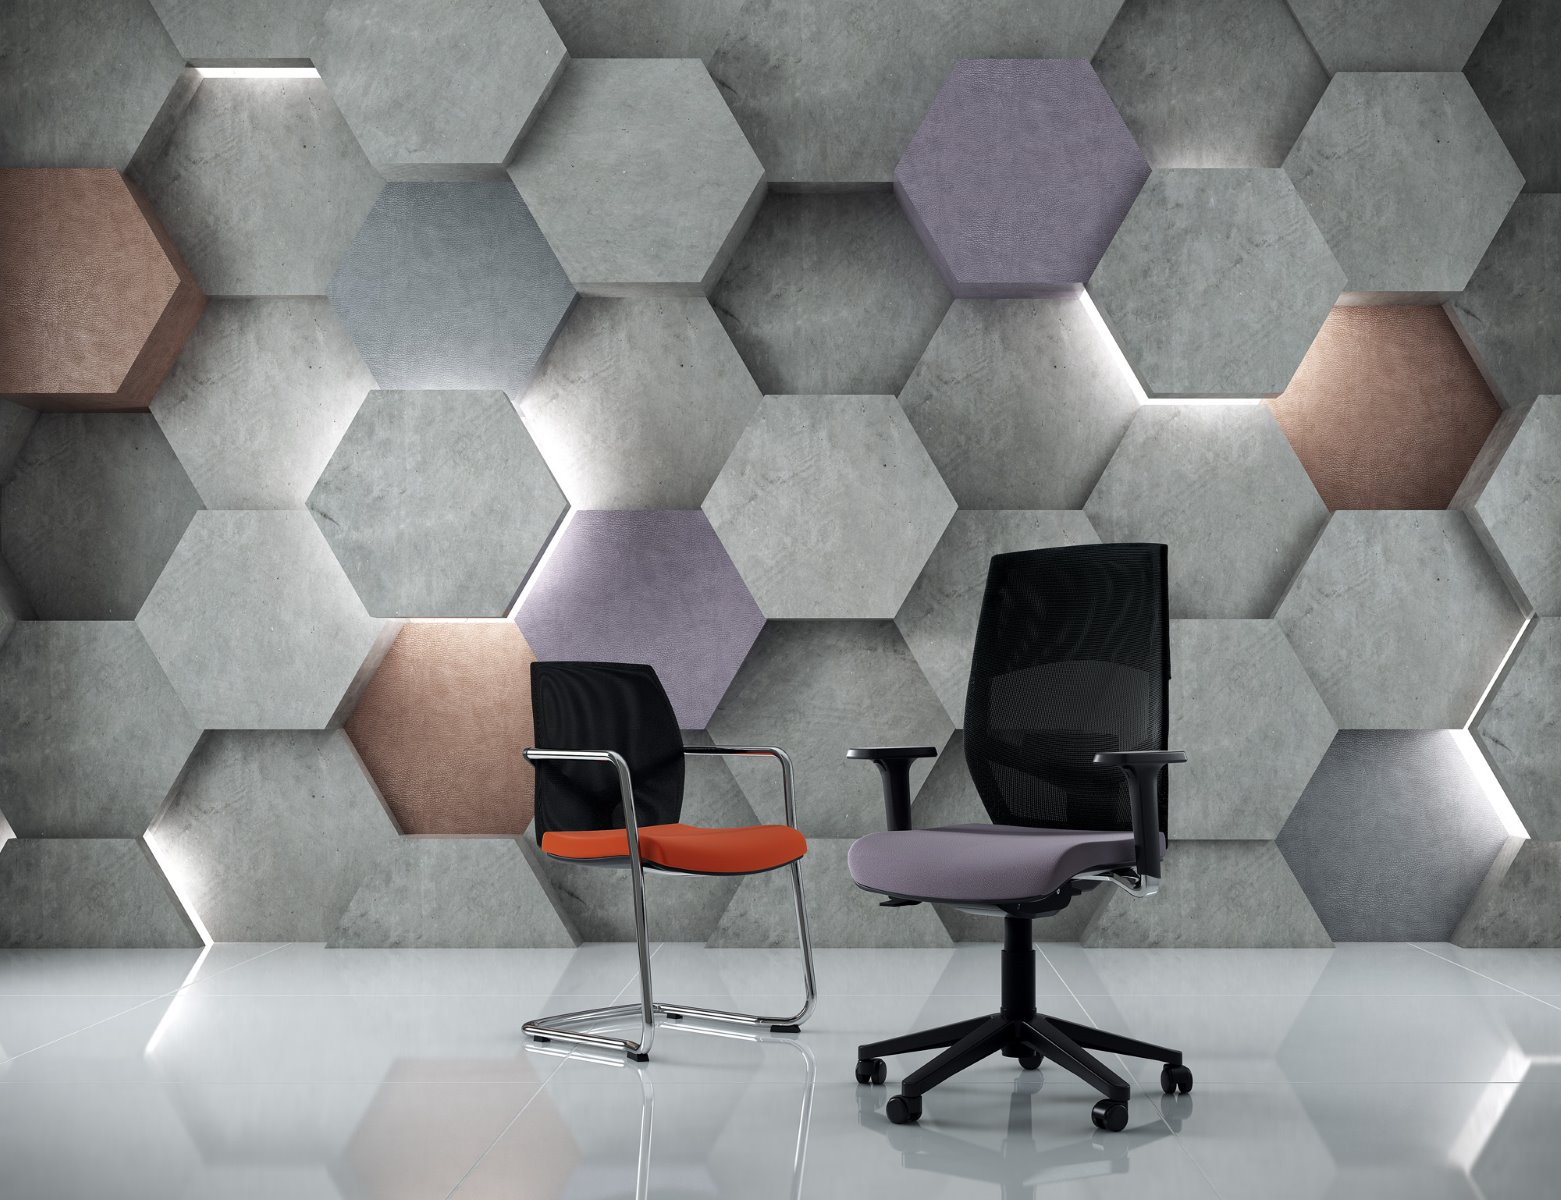 creative_cgi_product_office _chairs